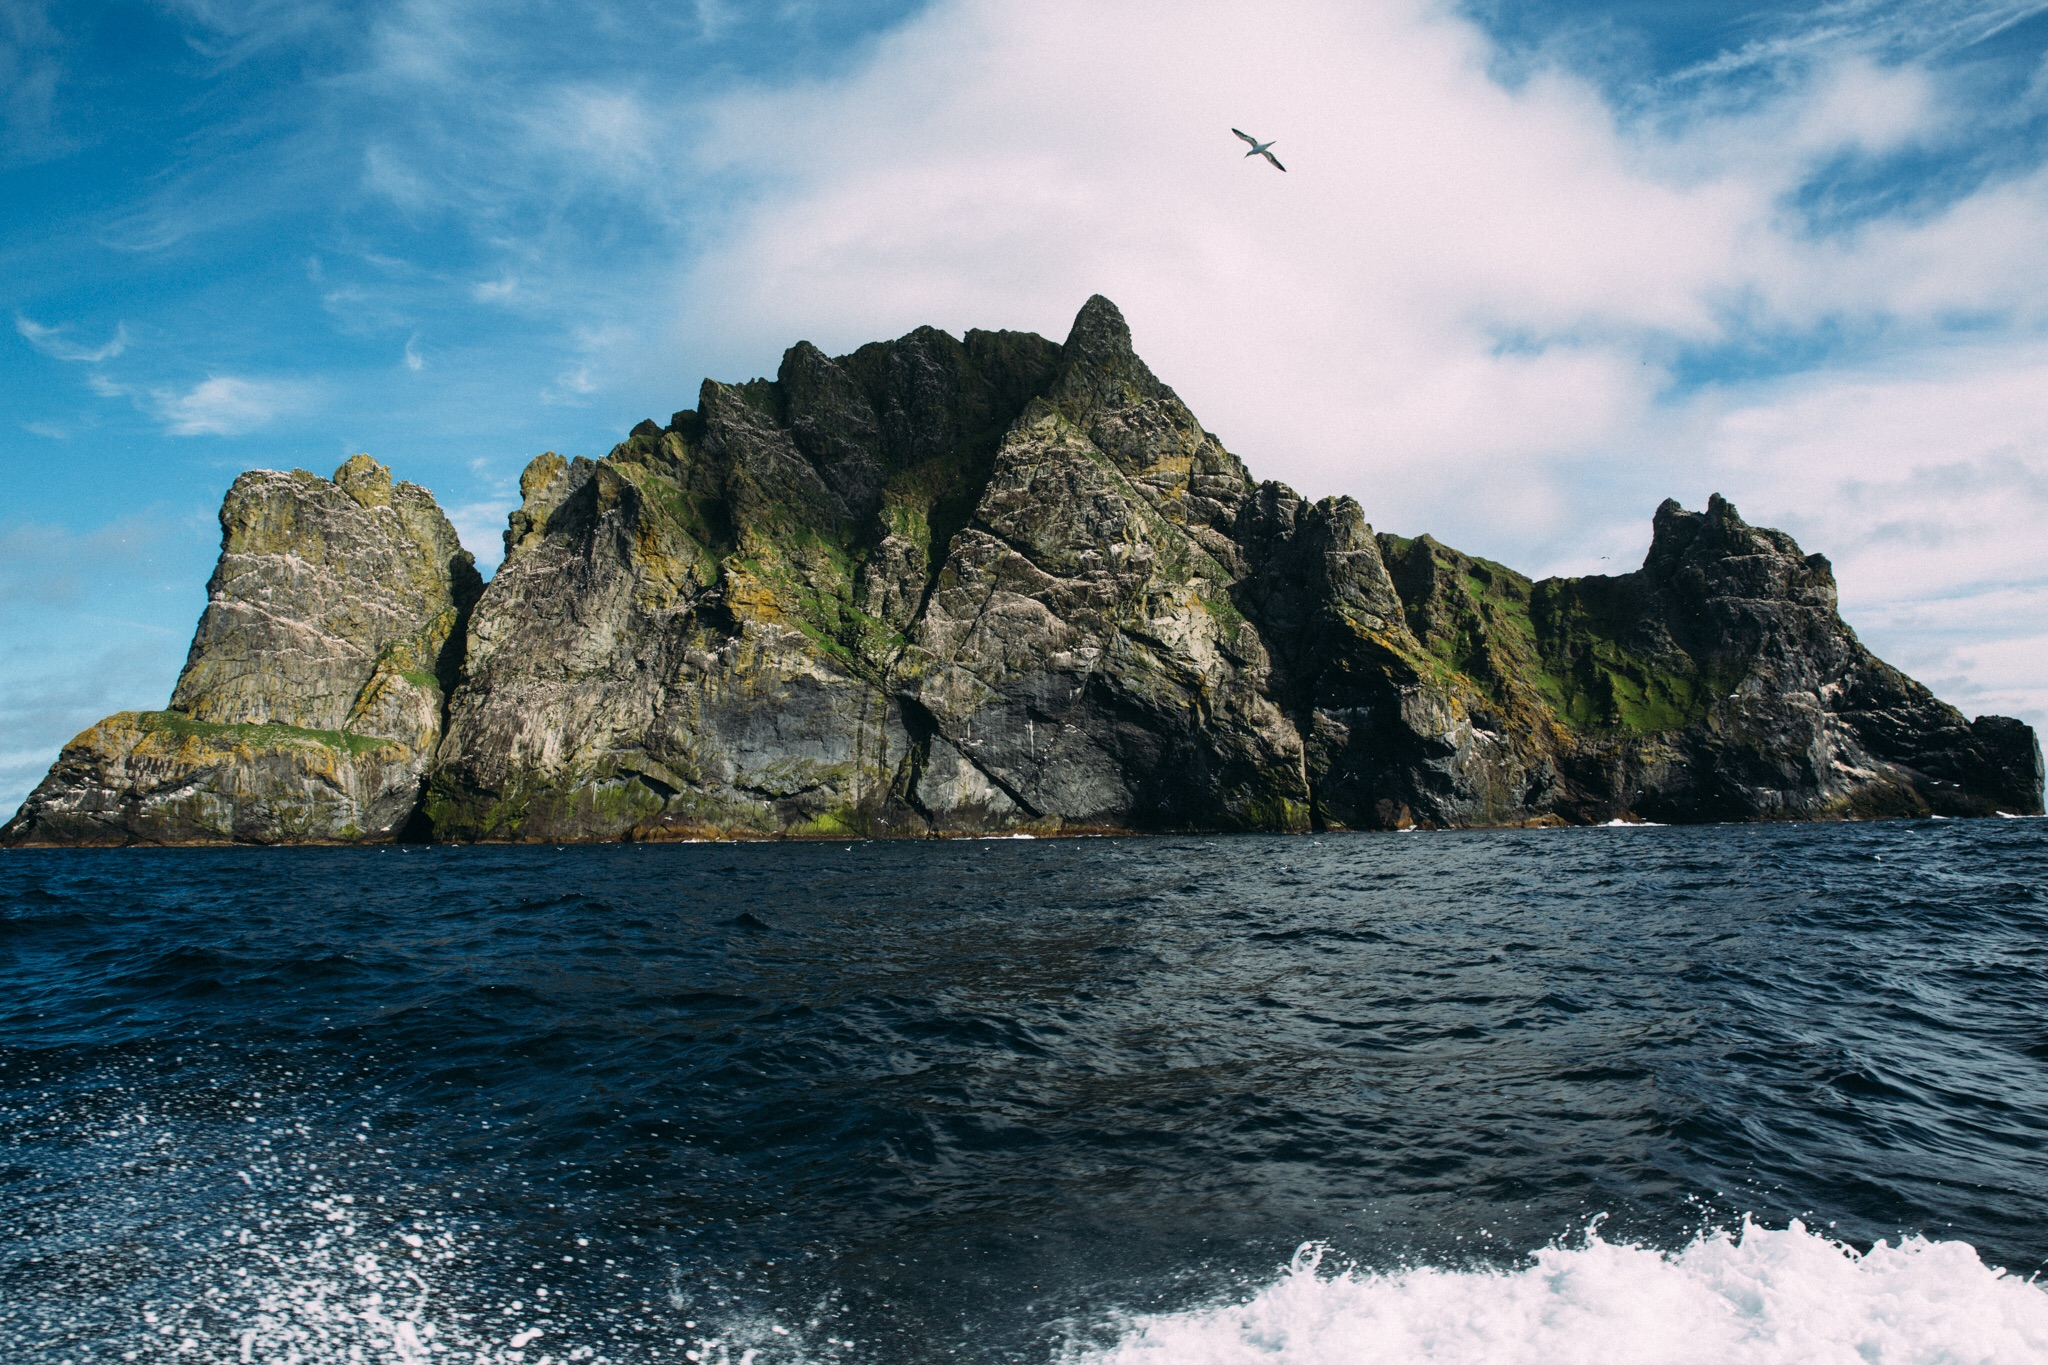 The north face of Soay, from the rocking deck of our boat, Integrity.